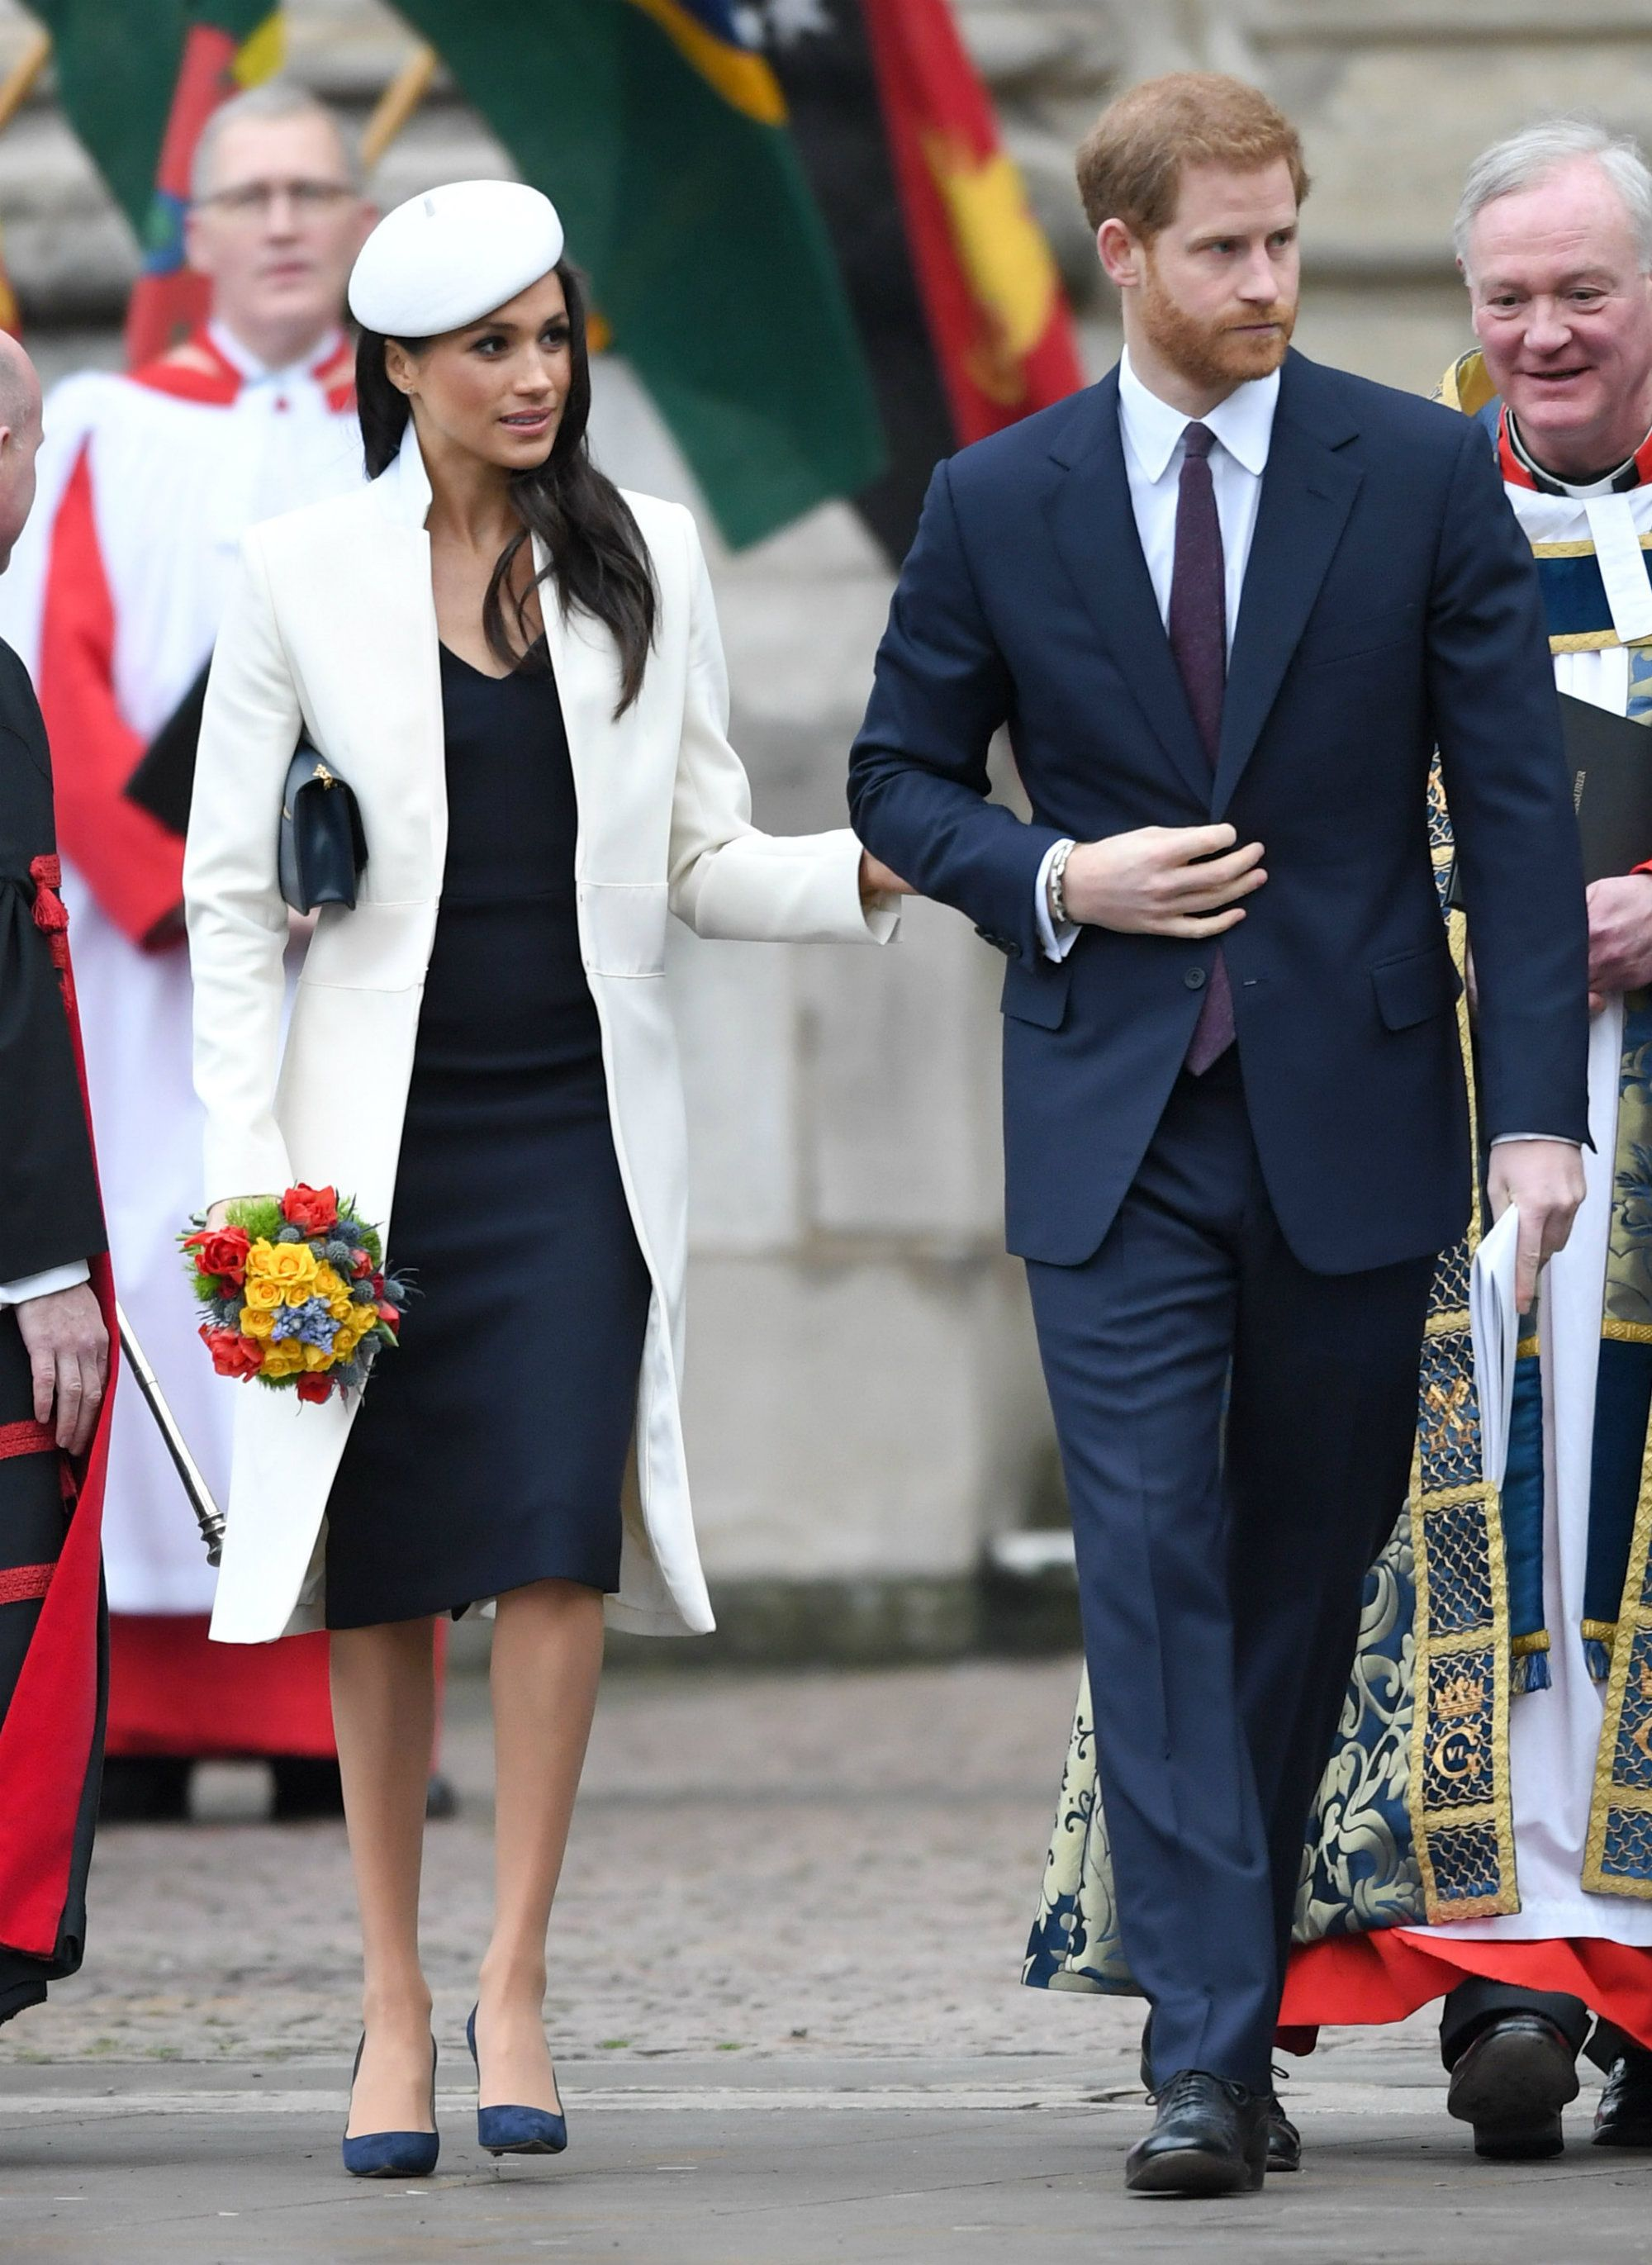 Prince Harry and Meghan Markle Got Caught Laughing in Church Yesterday pics